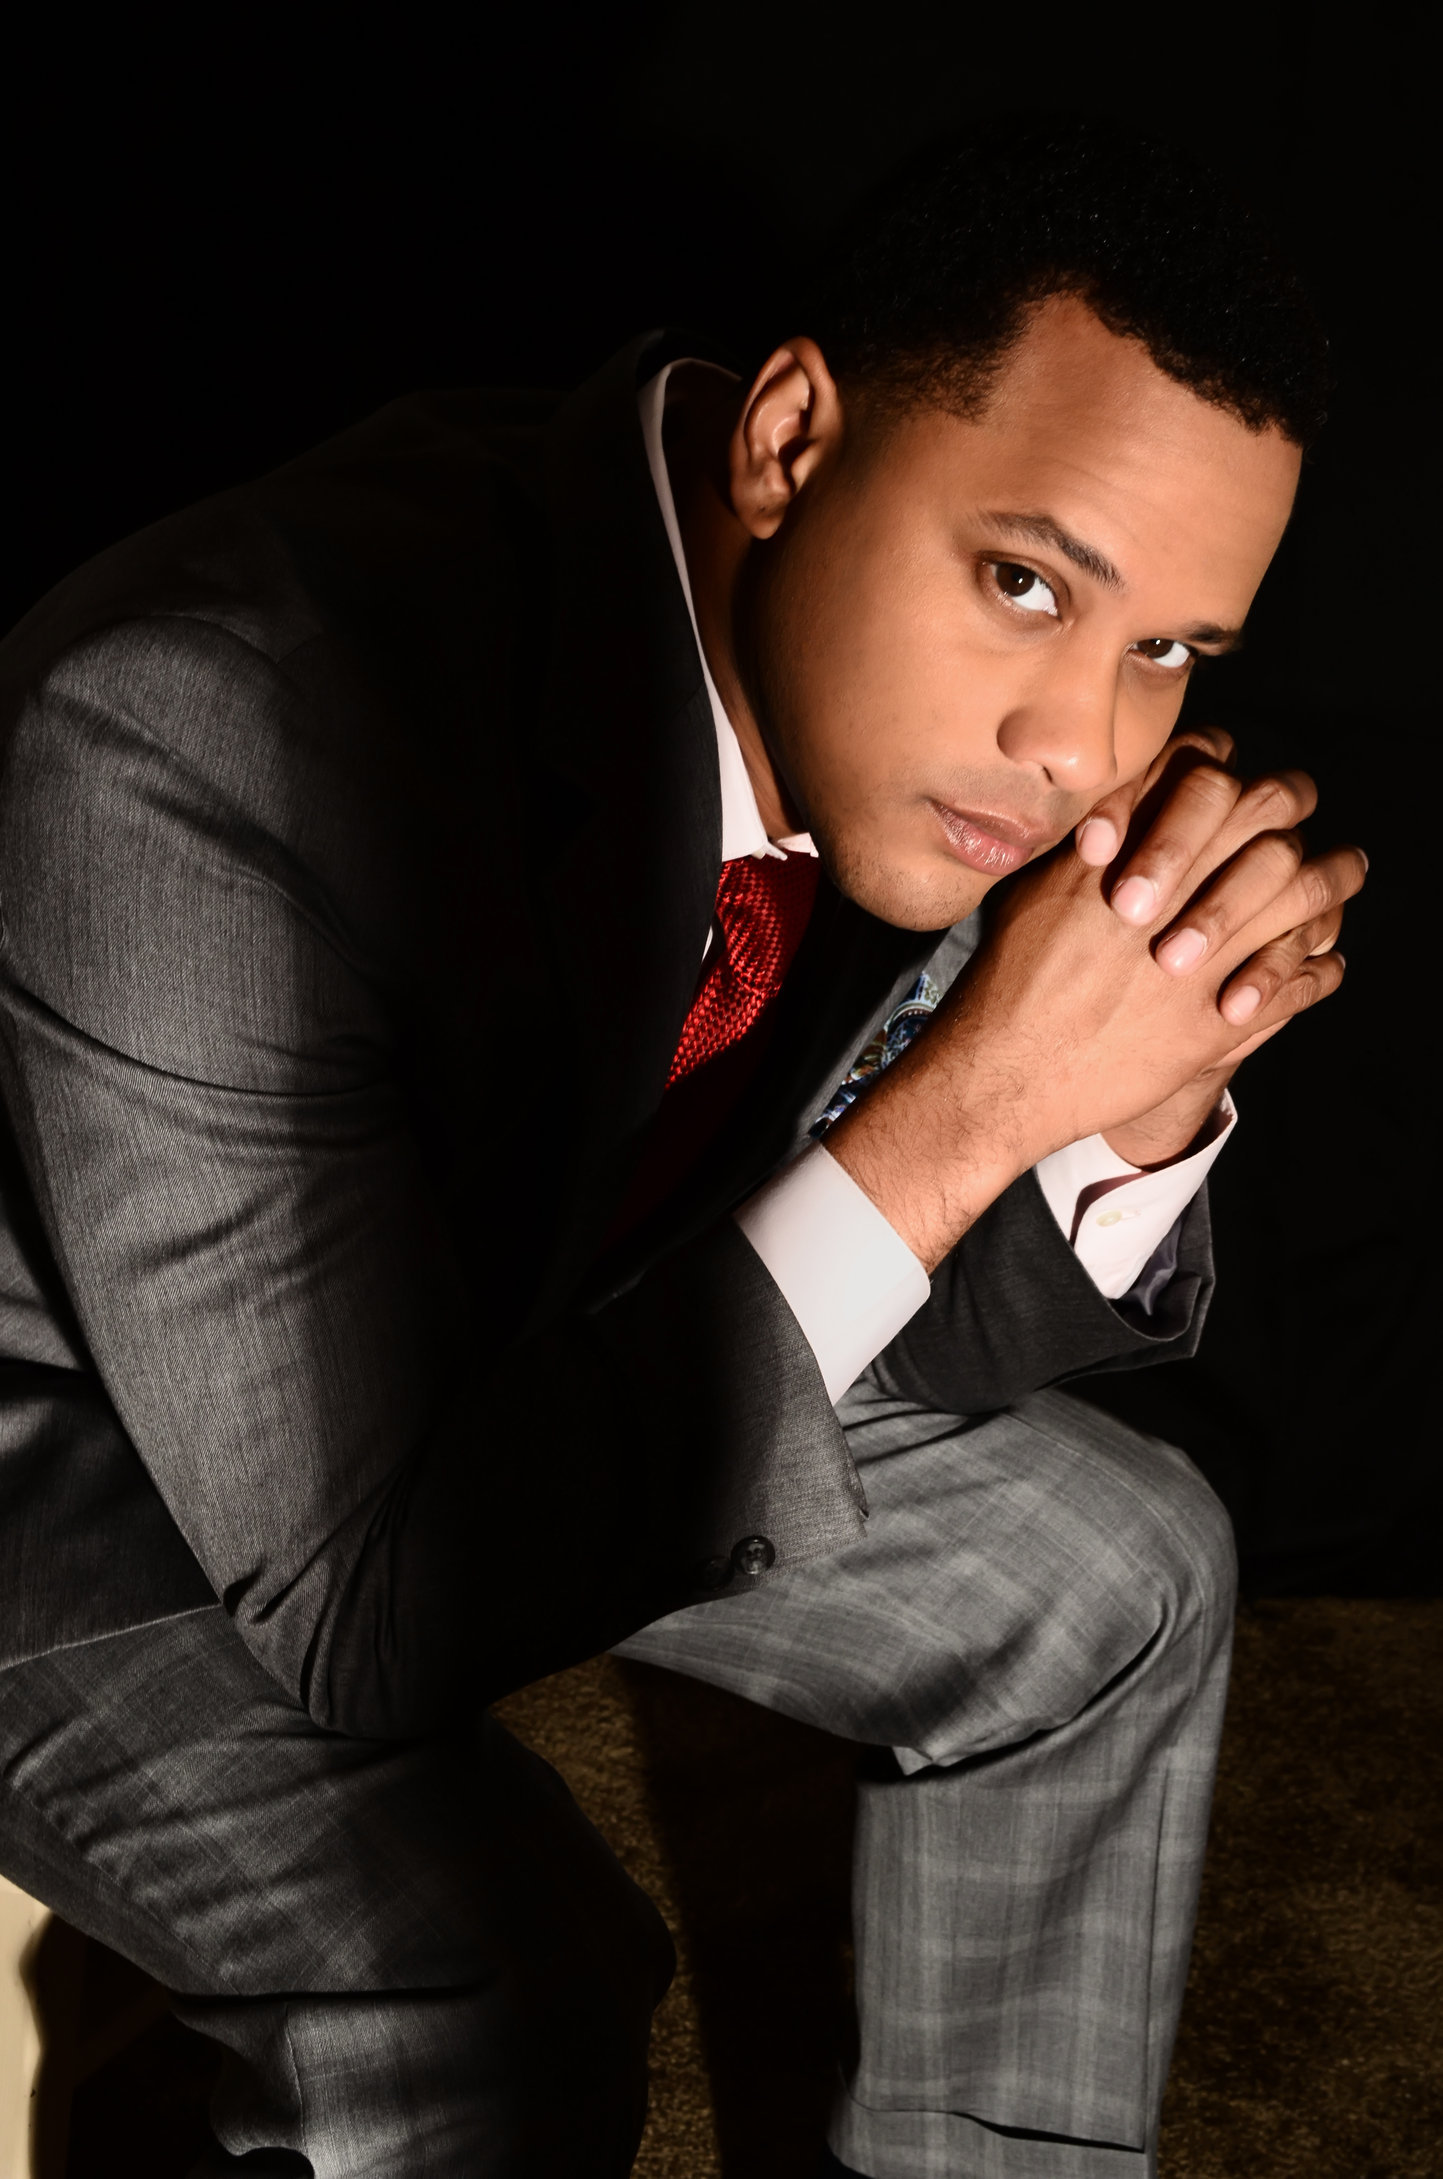 MICHAEL MARIO GOOD -  ACTOR, PRES. OF GOOD ACTING STUDIO. He worked for TYLER PERRY in Atlanta, AG.